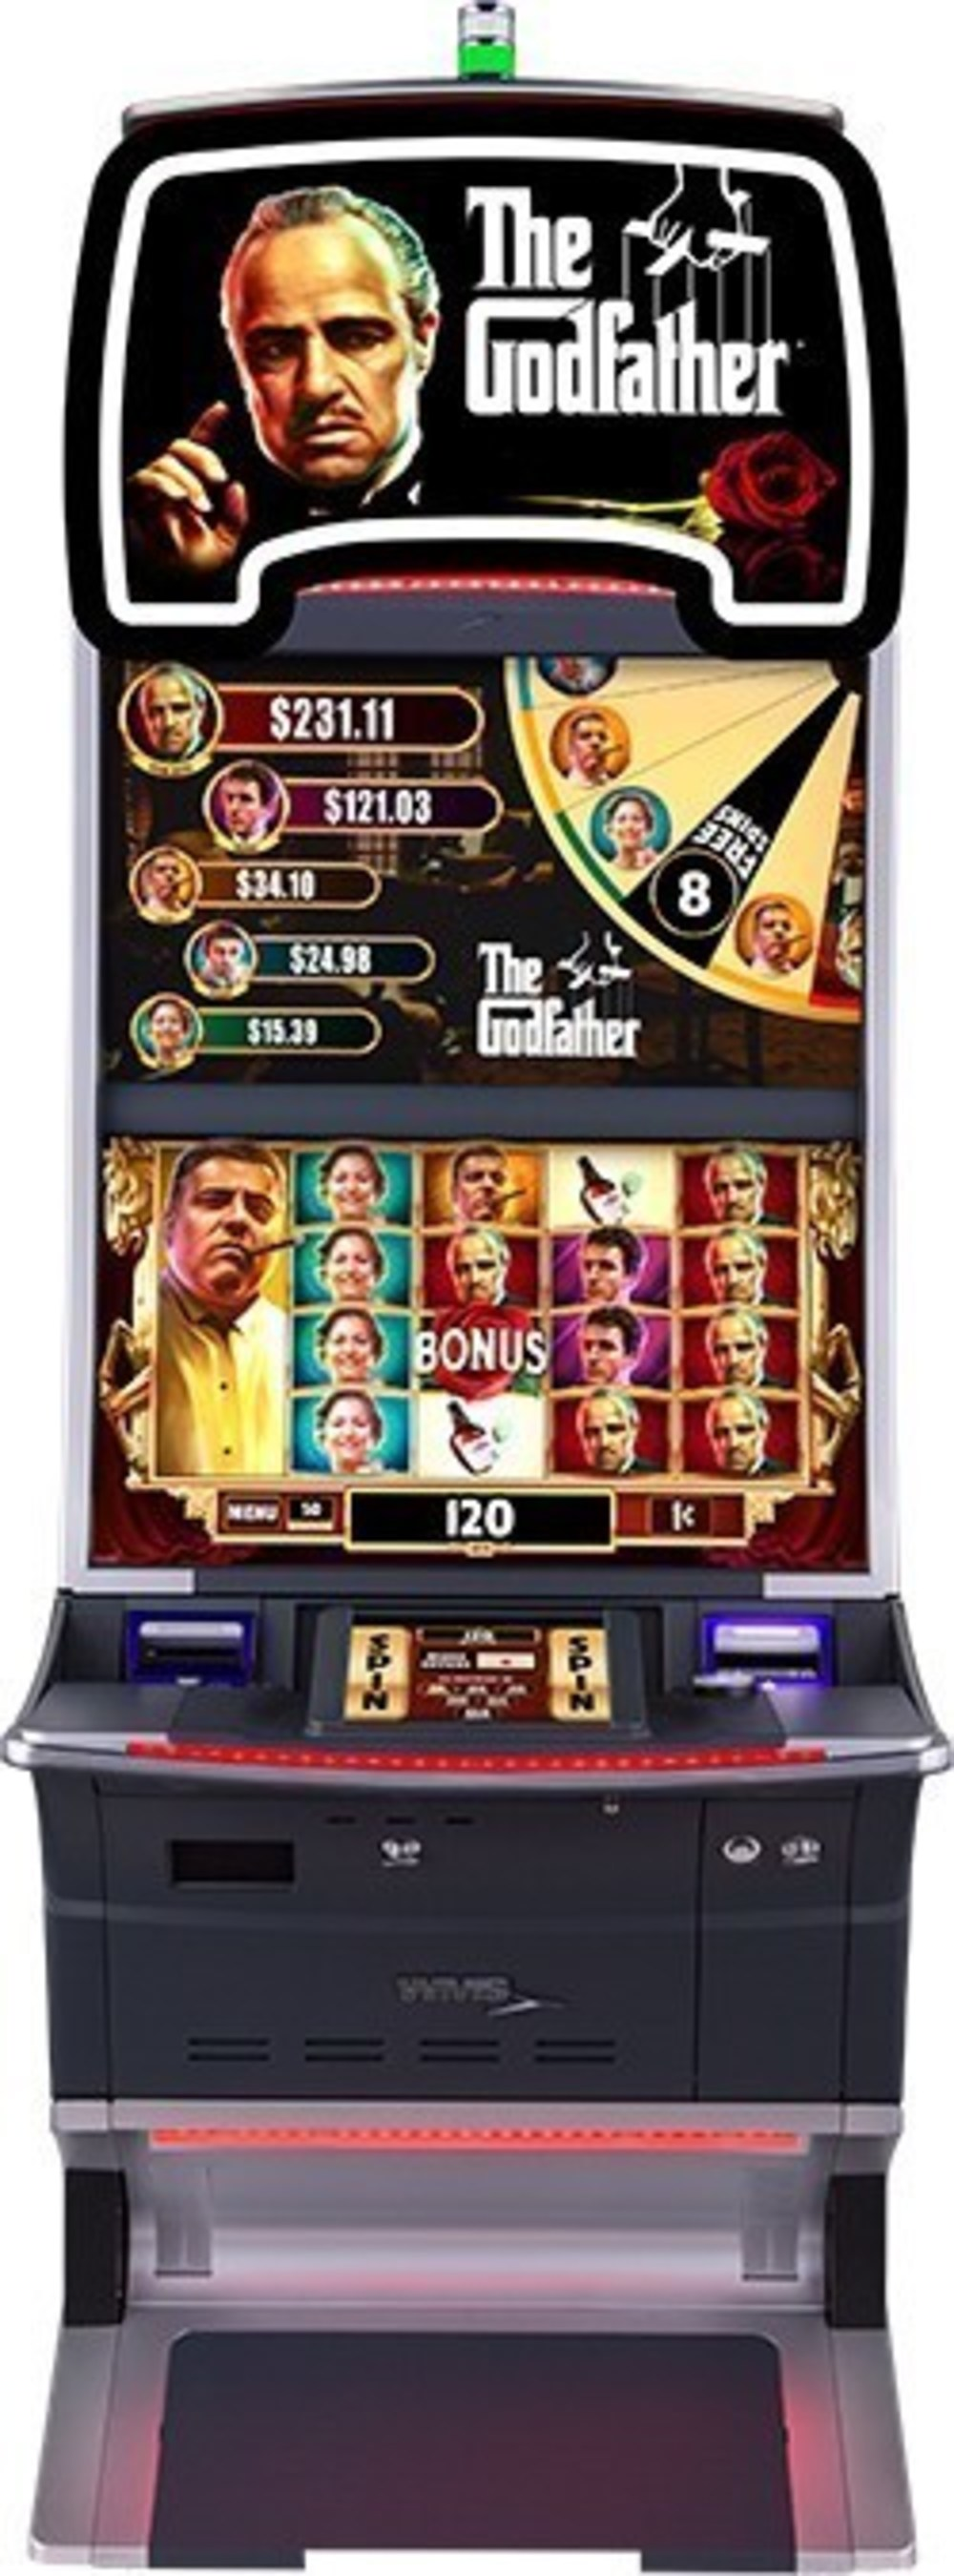 THE GODFATHER(R) theme on the s32 cabinet offers free spins with double the lines, a five-level near-area progressive jackpot feature and random character symbols that award character upgrades, respins, multipliers, or more credits.